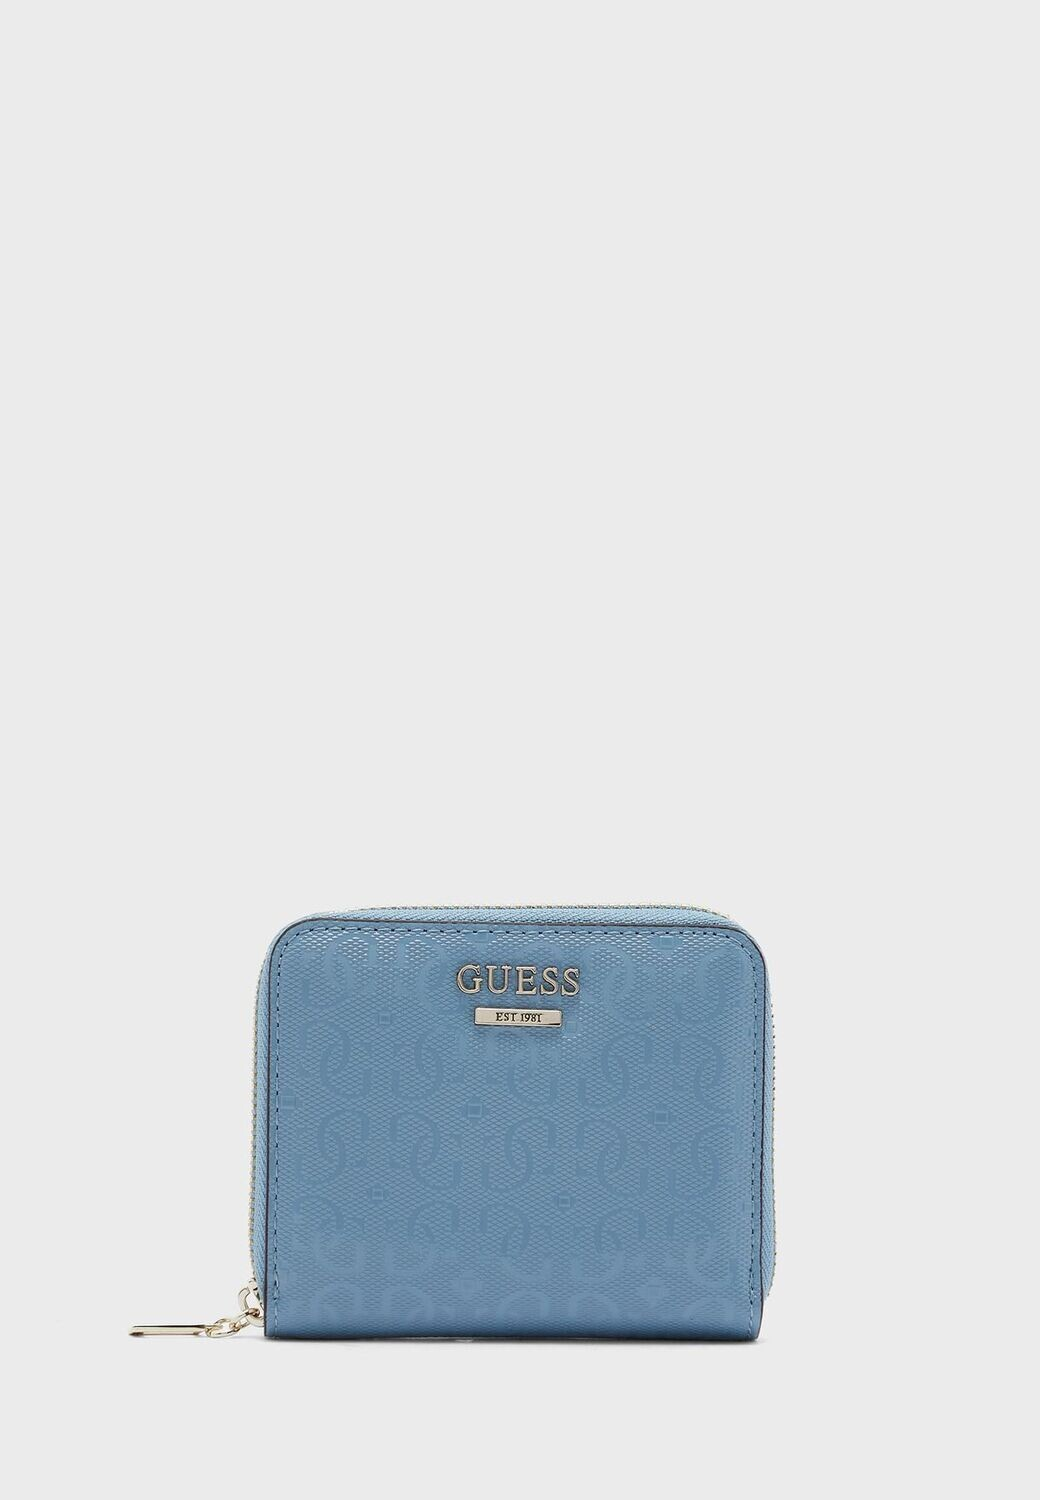 GUESS BLANE SMALL BLUE WALLET